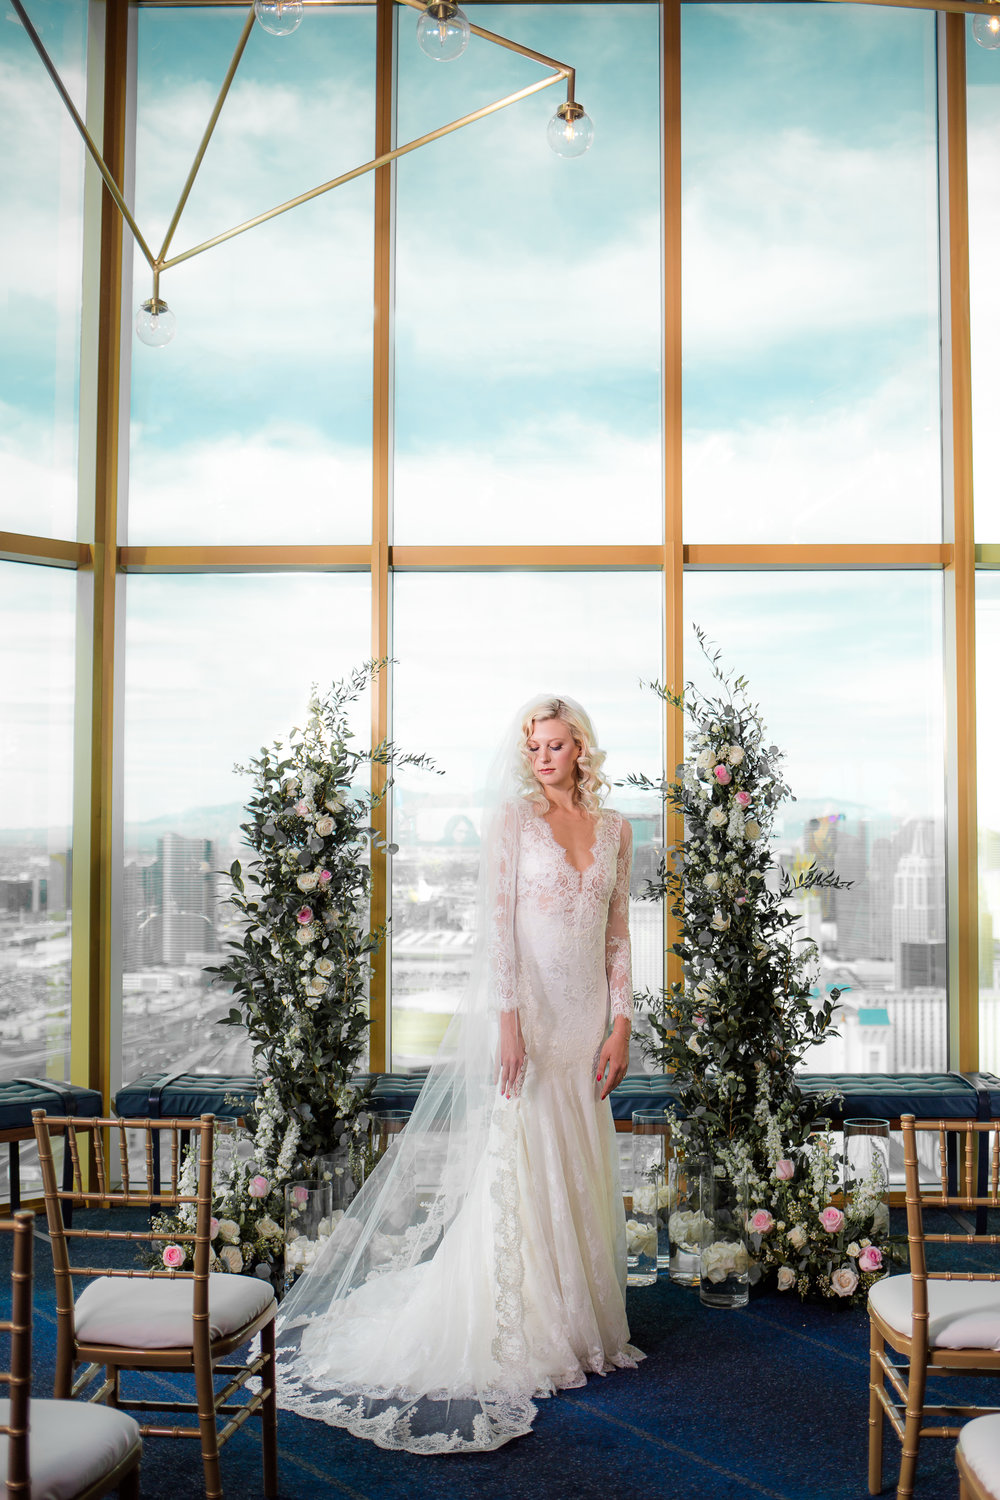 Bride in Olvi lace wedding gown.   Styled Wedding Shoot inspired by French Blue by Las Vegas Wedding Planner Andrea Eppolito.  Photography by   Rebecca Marie  .  Floral and Decor by   By Dzign  .  Beauty by   Amelia C & Co  .  Shot at Rivea at T  he Delano.